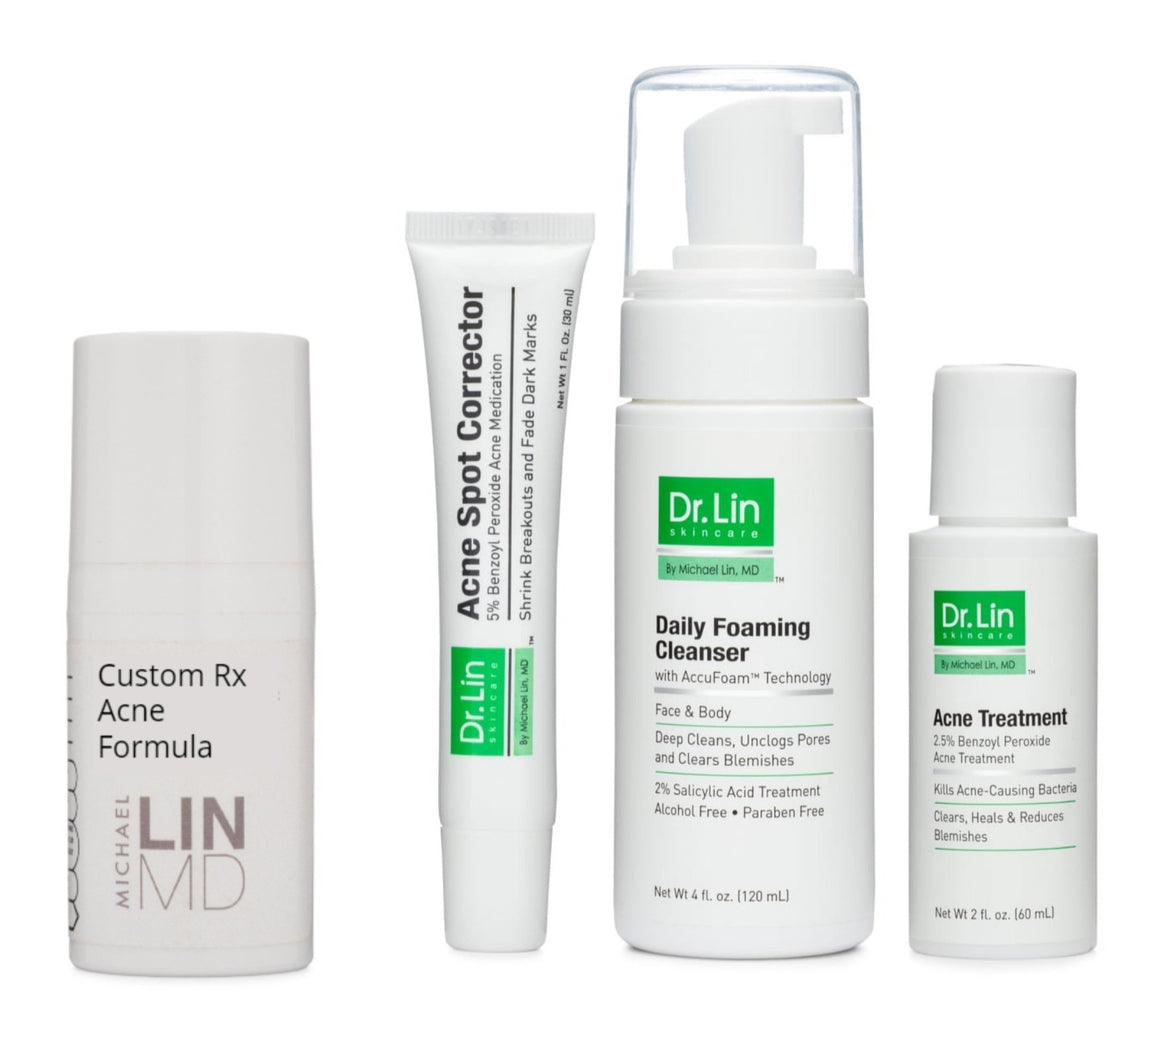 Acne Prescription Formula + 3 Step Kit + Hydrating Gel - Dr. Lin Skincare